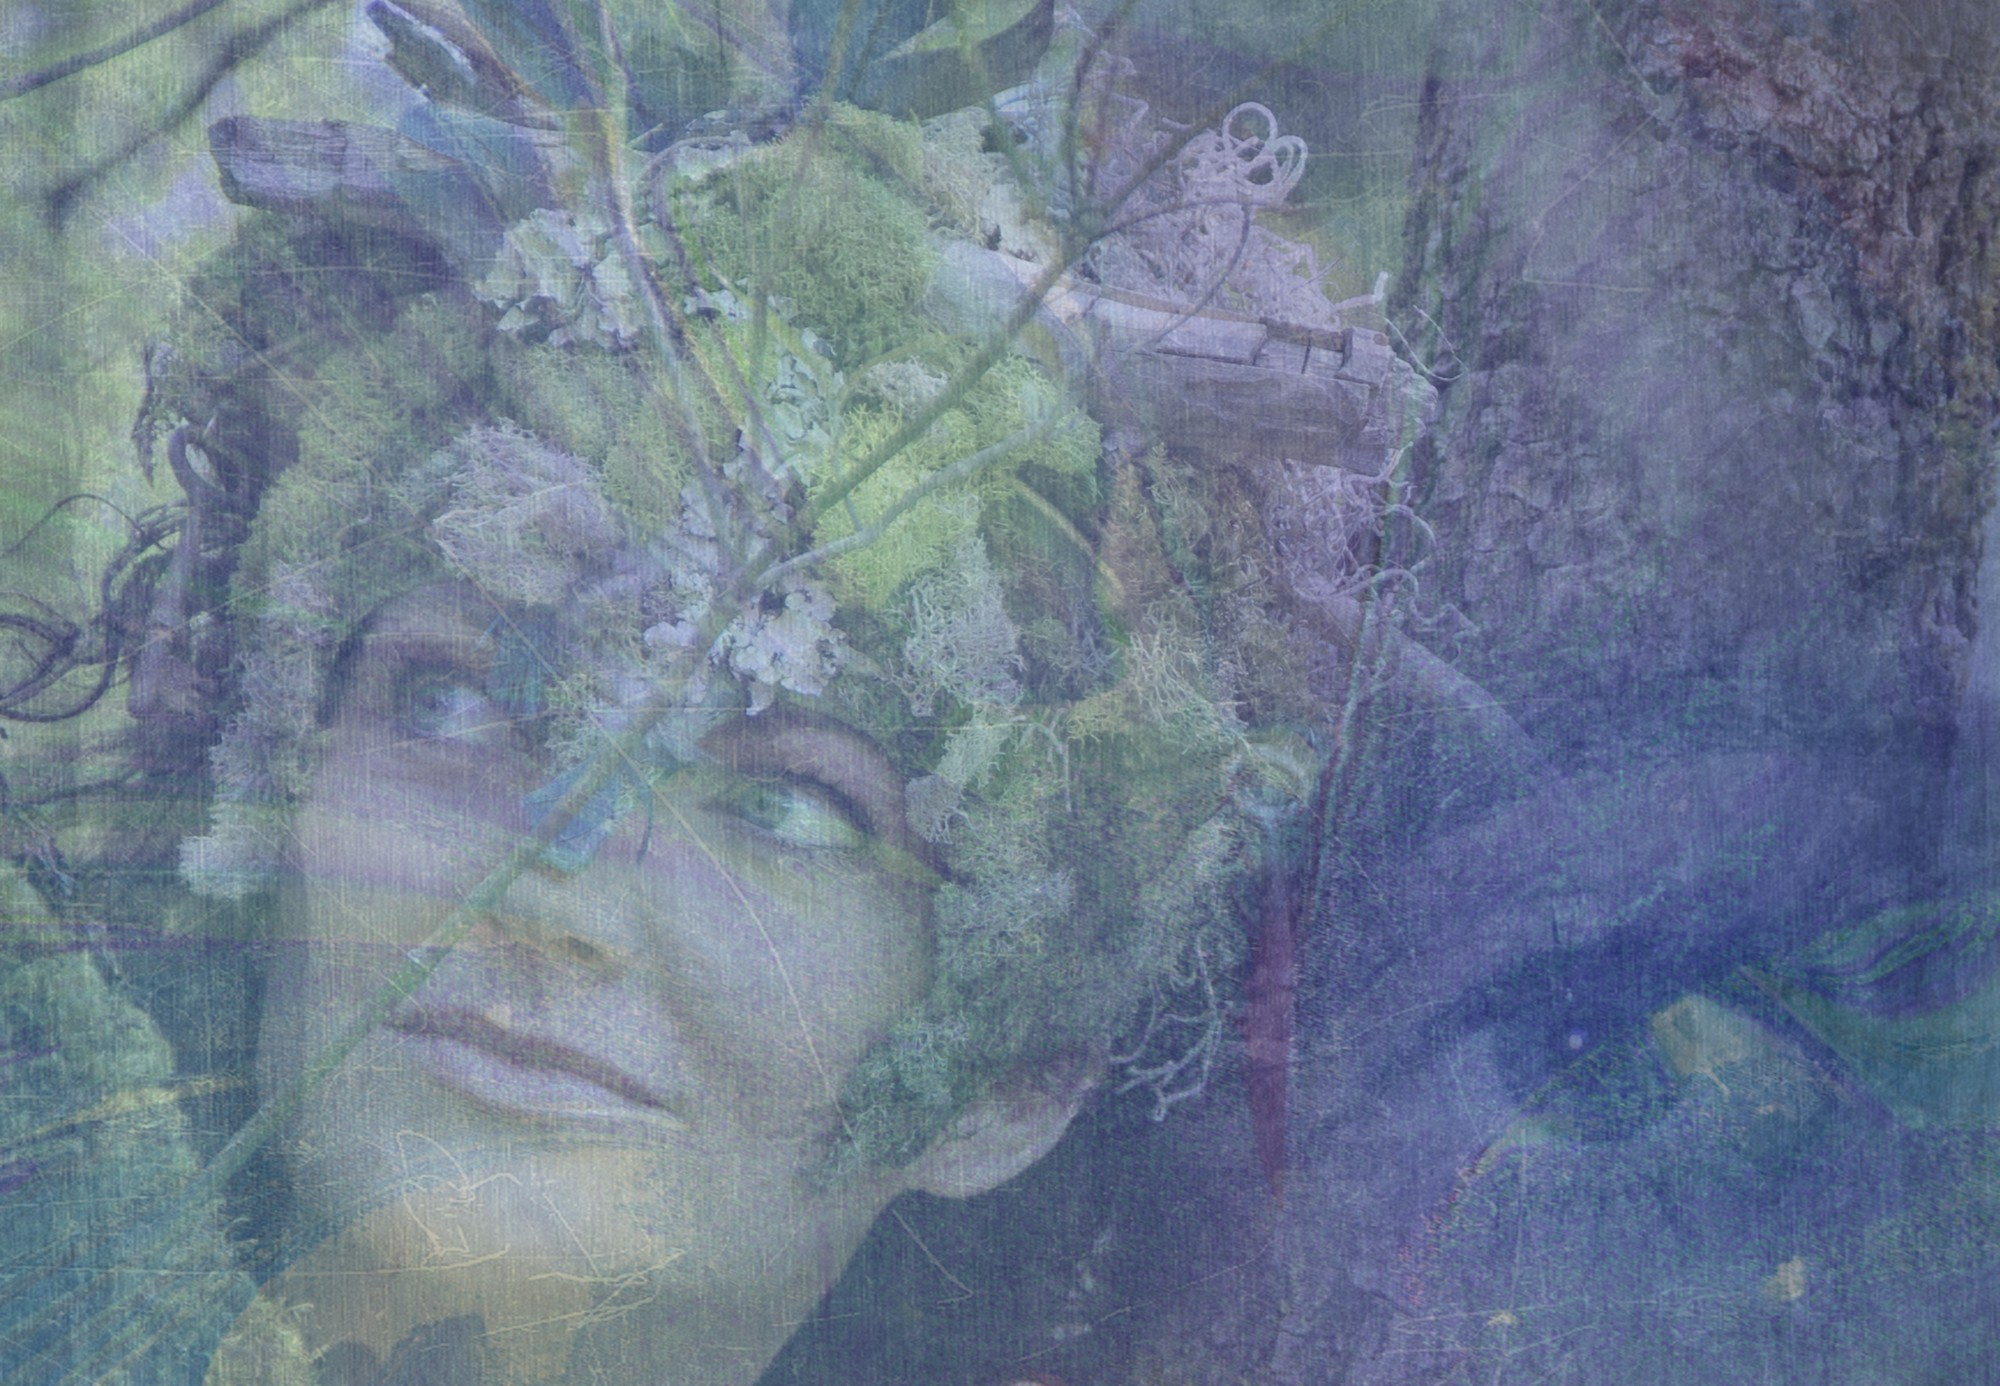 Composite image of a woman's face adorned by moss, bark and twigs in a muted palette of pastel greens, purples and blues.